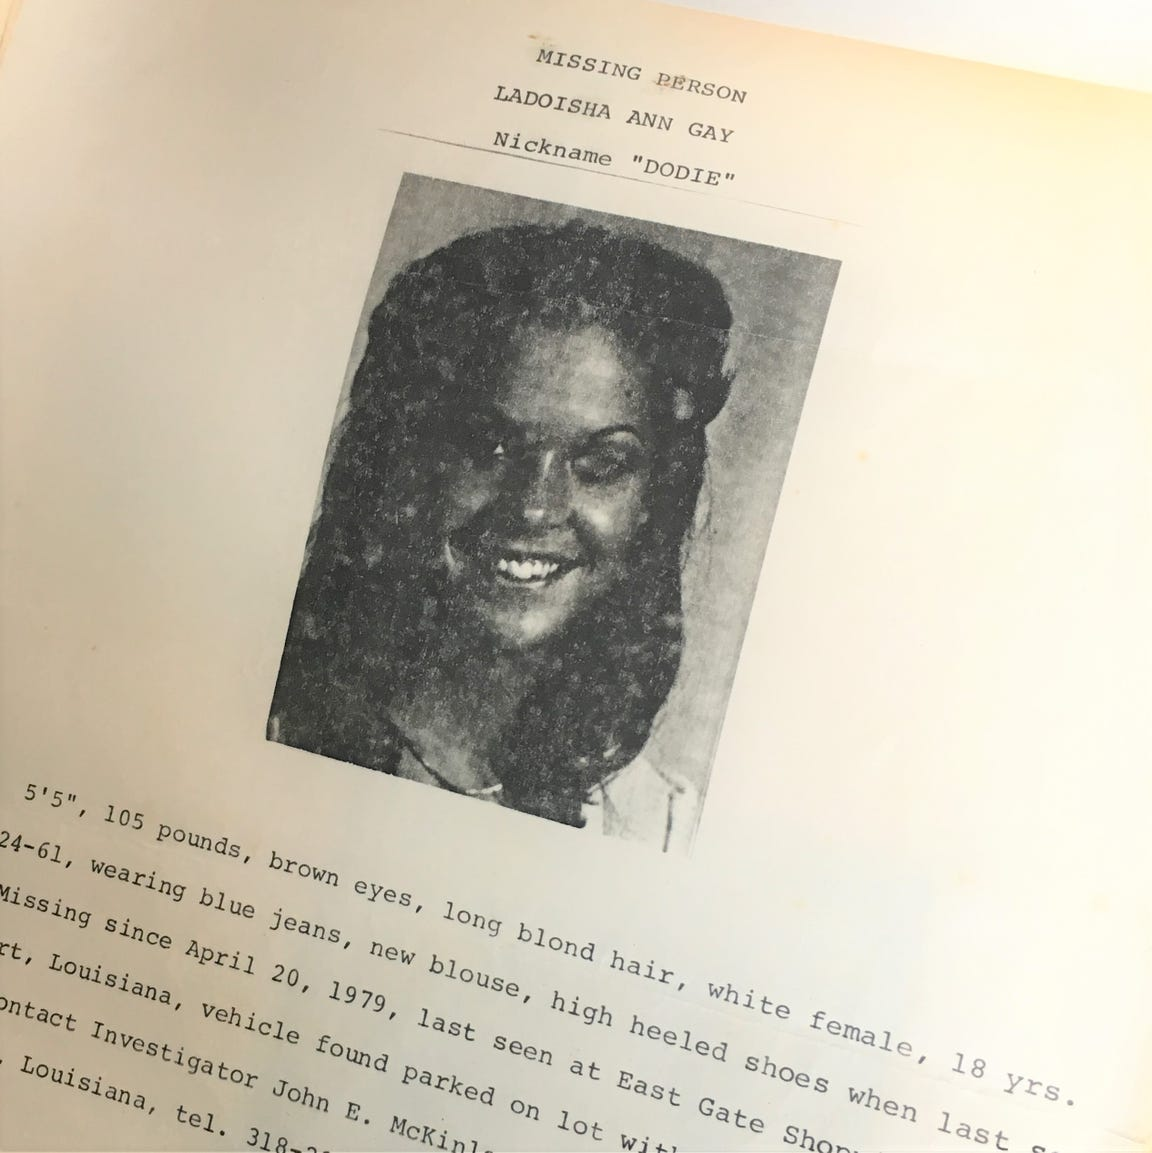 A missing person information sheet distributed at the time of Dodie Gay's disappearance in 1979.